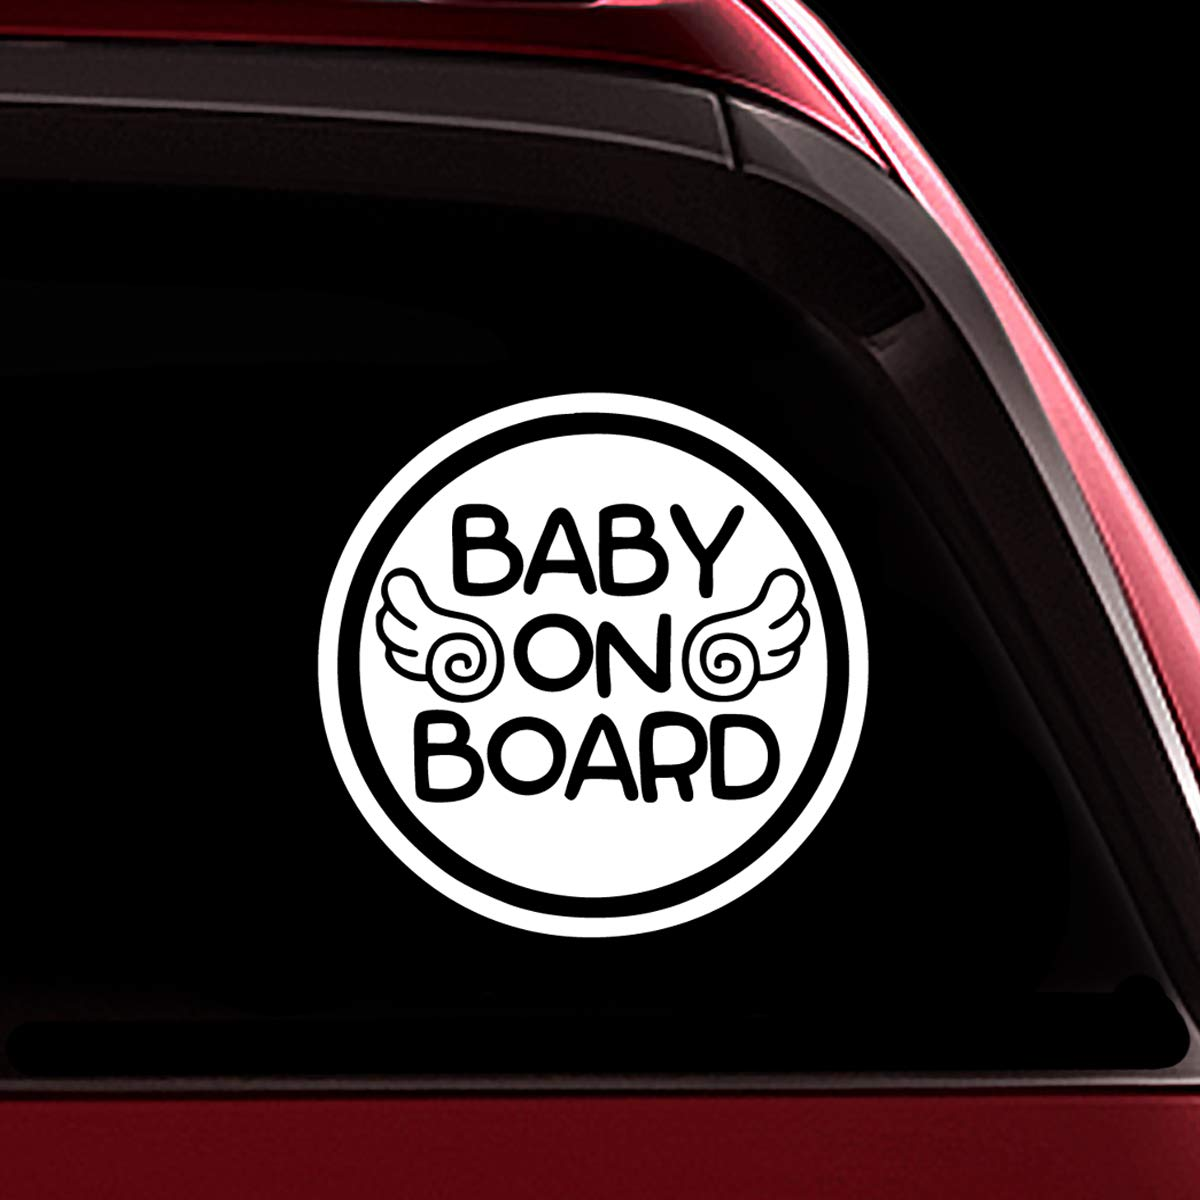 Baby on Board Sticker Decal Safety Caution Sign for Car Windows Carlos from The Hangover Funny Decal Bumper Stickers Set of 2 TOTOMO #ALI-019